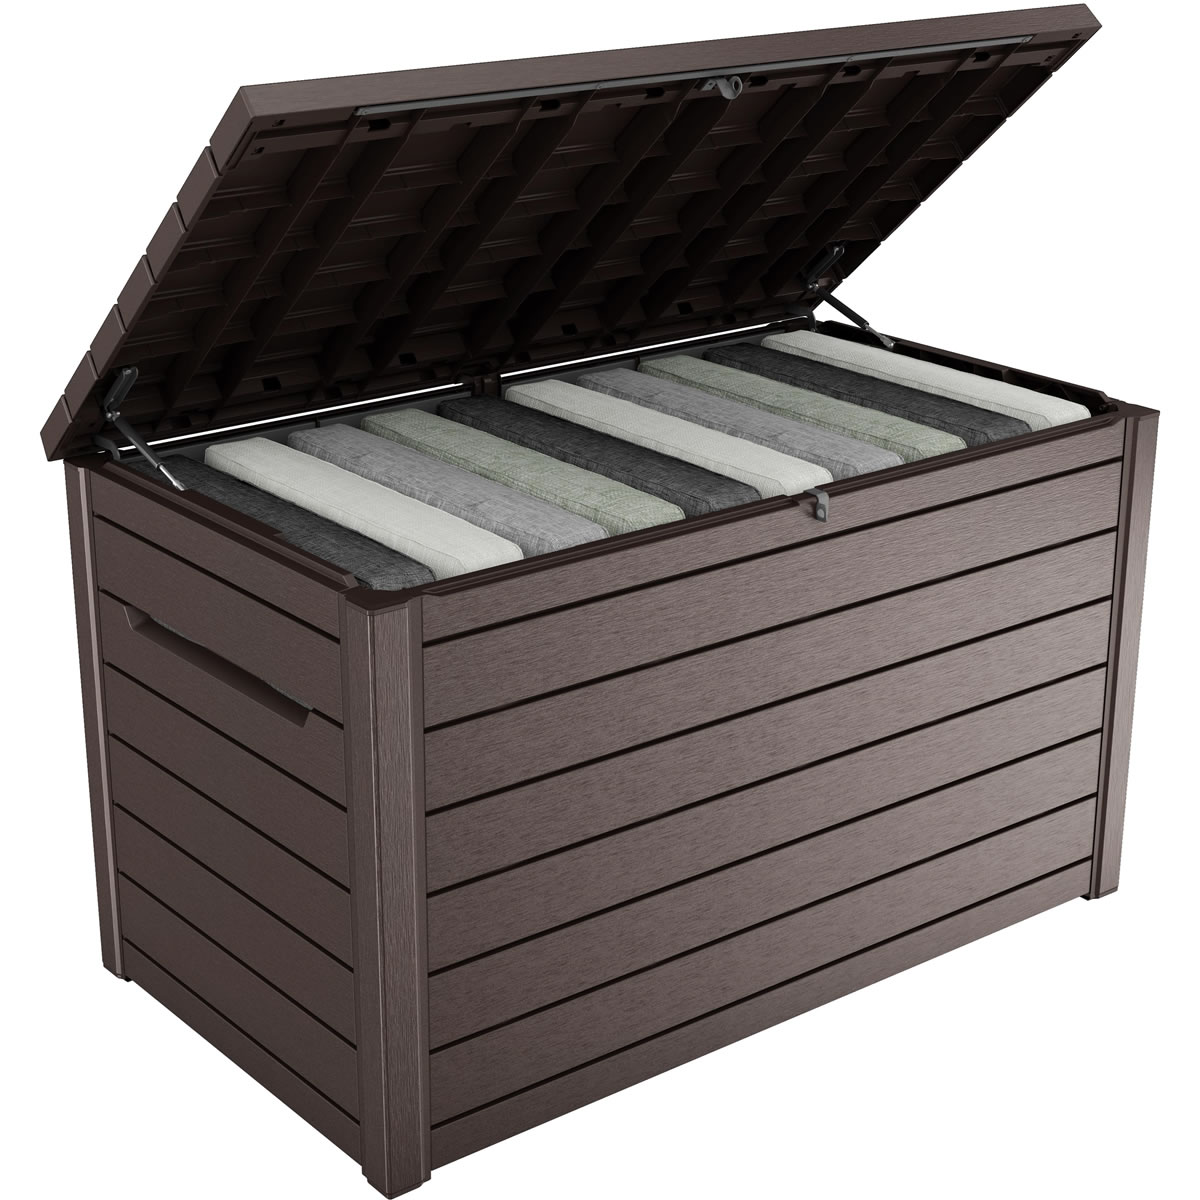 Extra image of Keter Ontario XXL Deck Storage Box - Brown